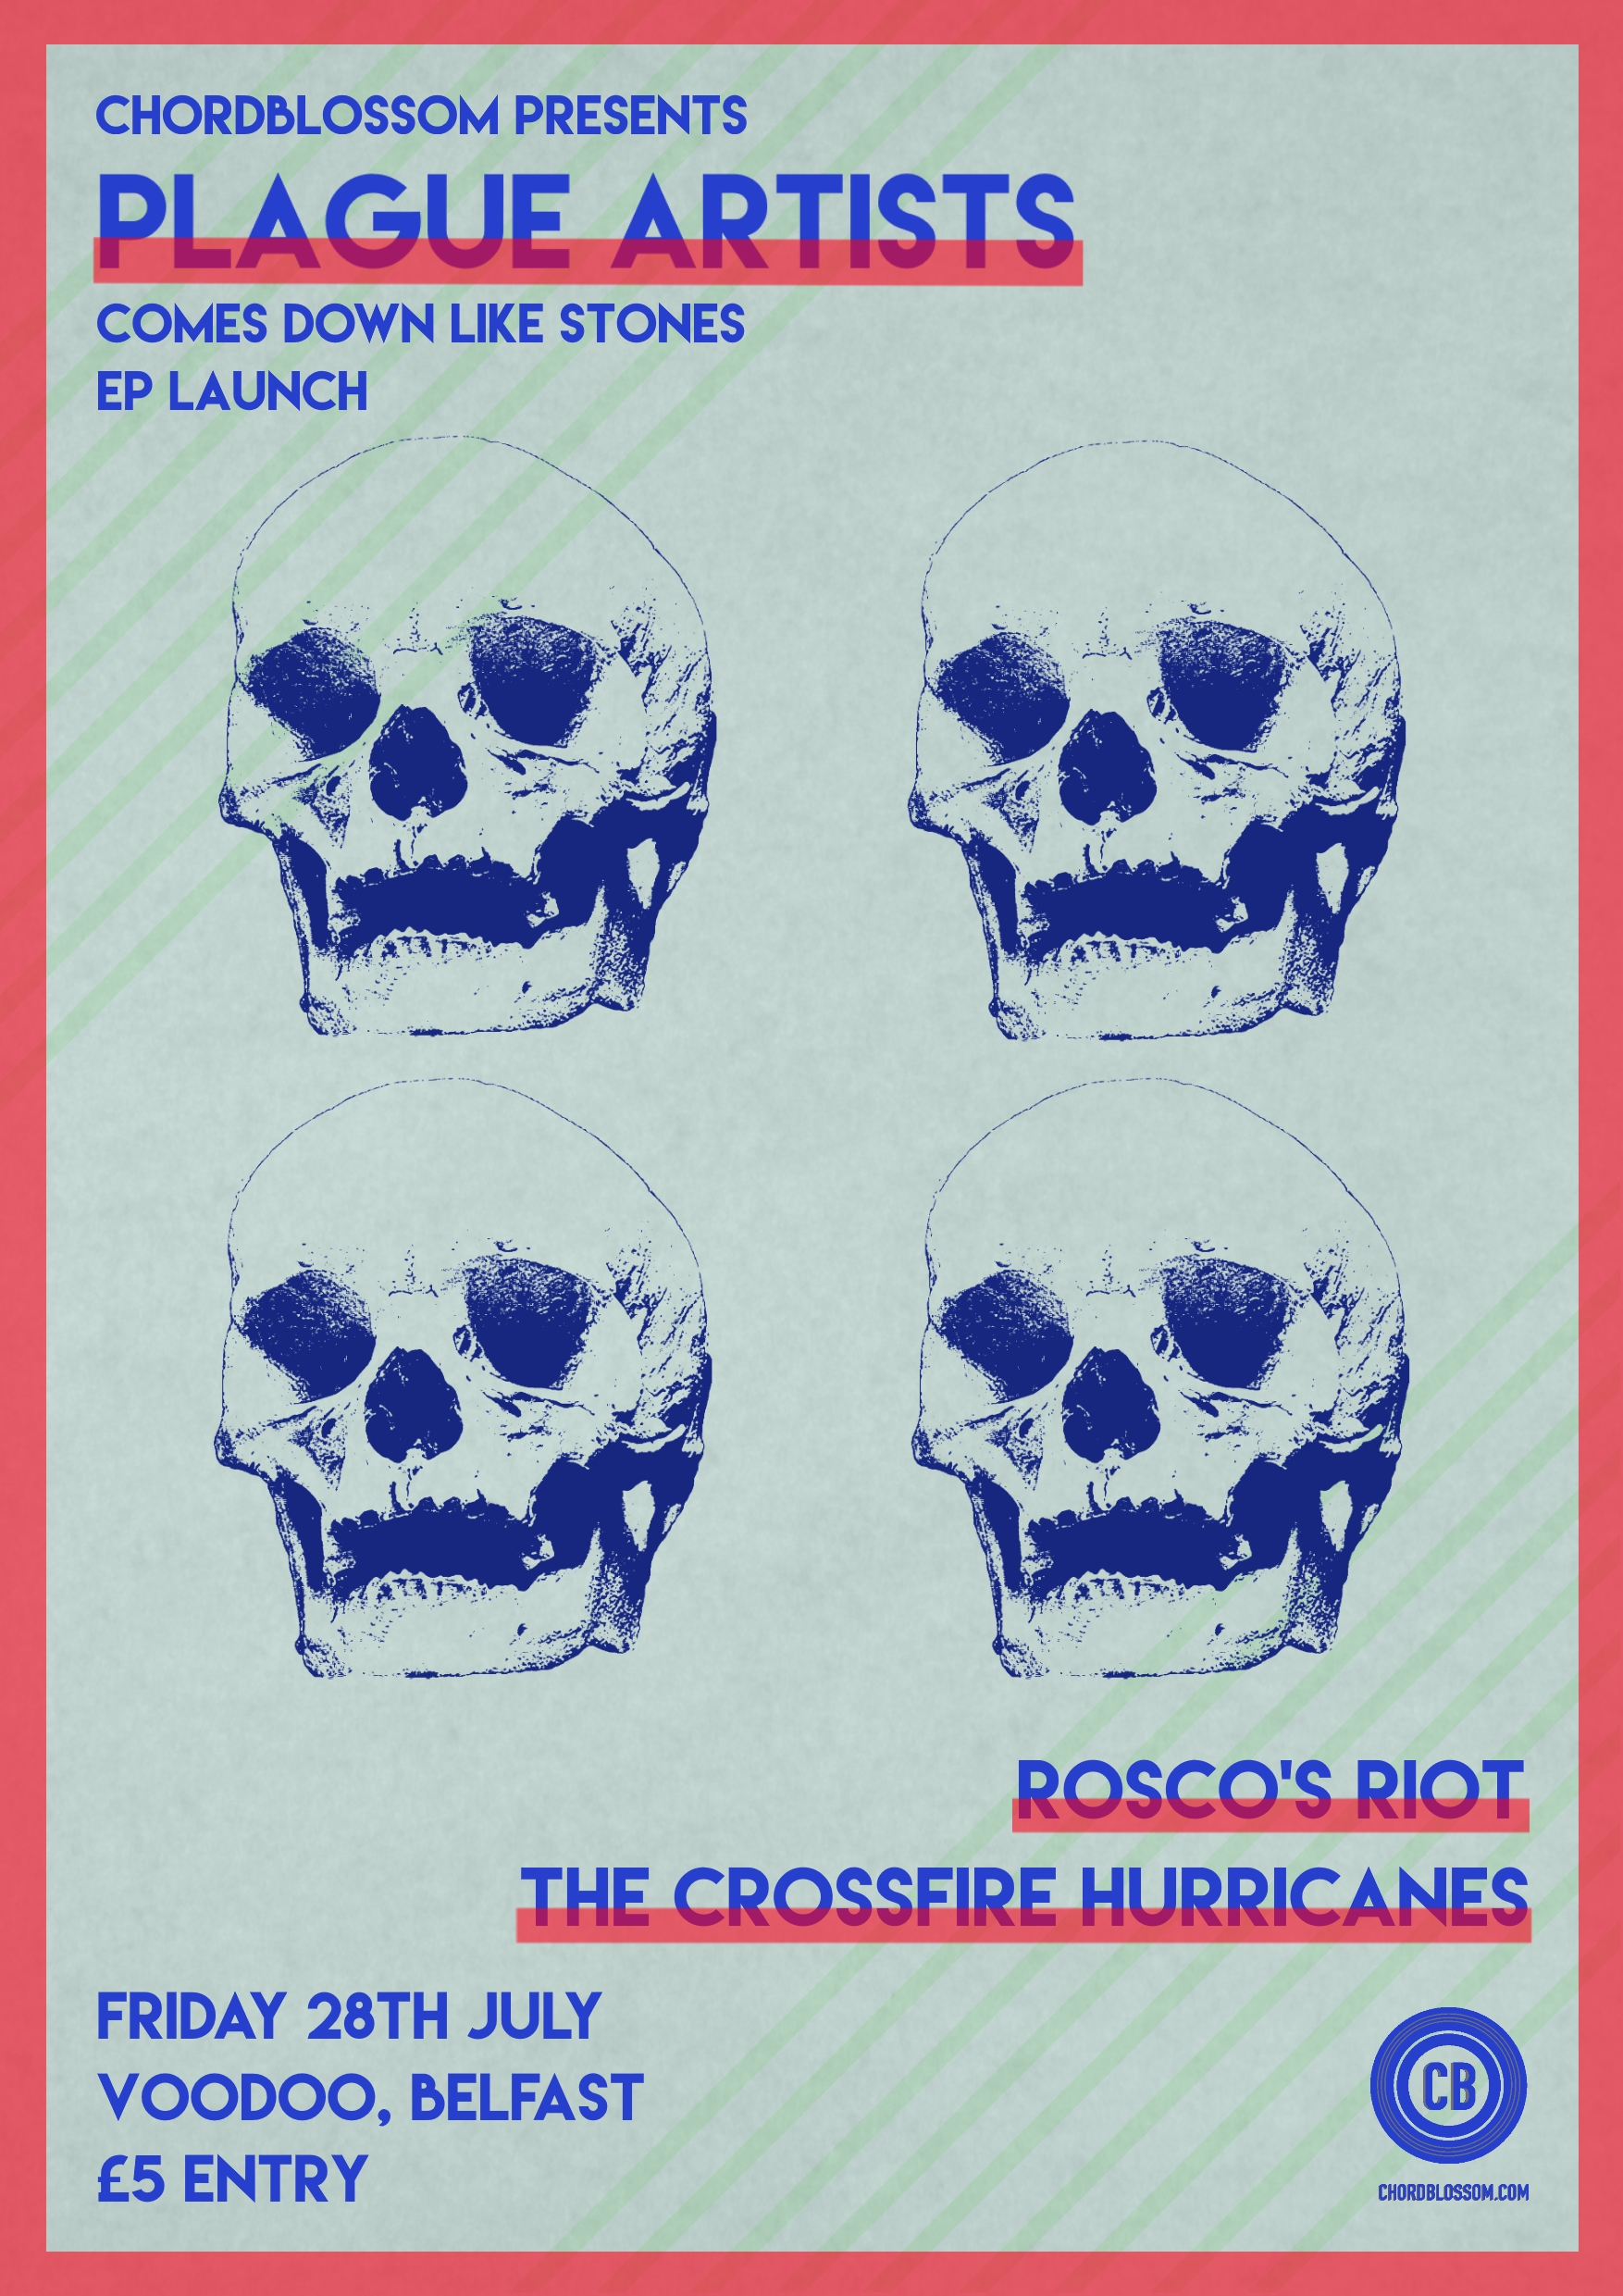 Plague Artists EP Launch with Rosco's Riot and The Crossfire Hurricanes